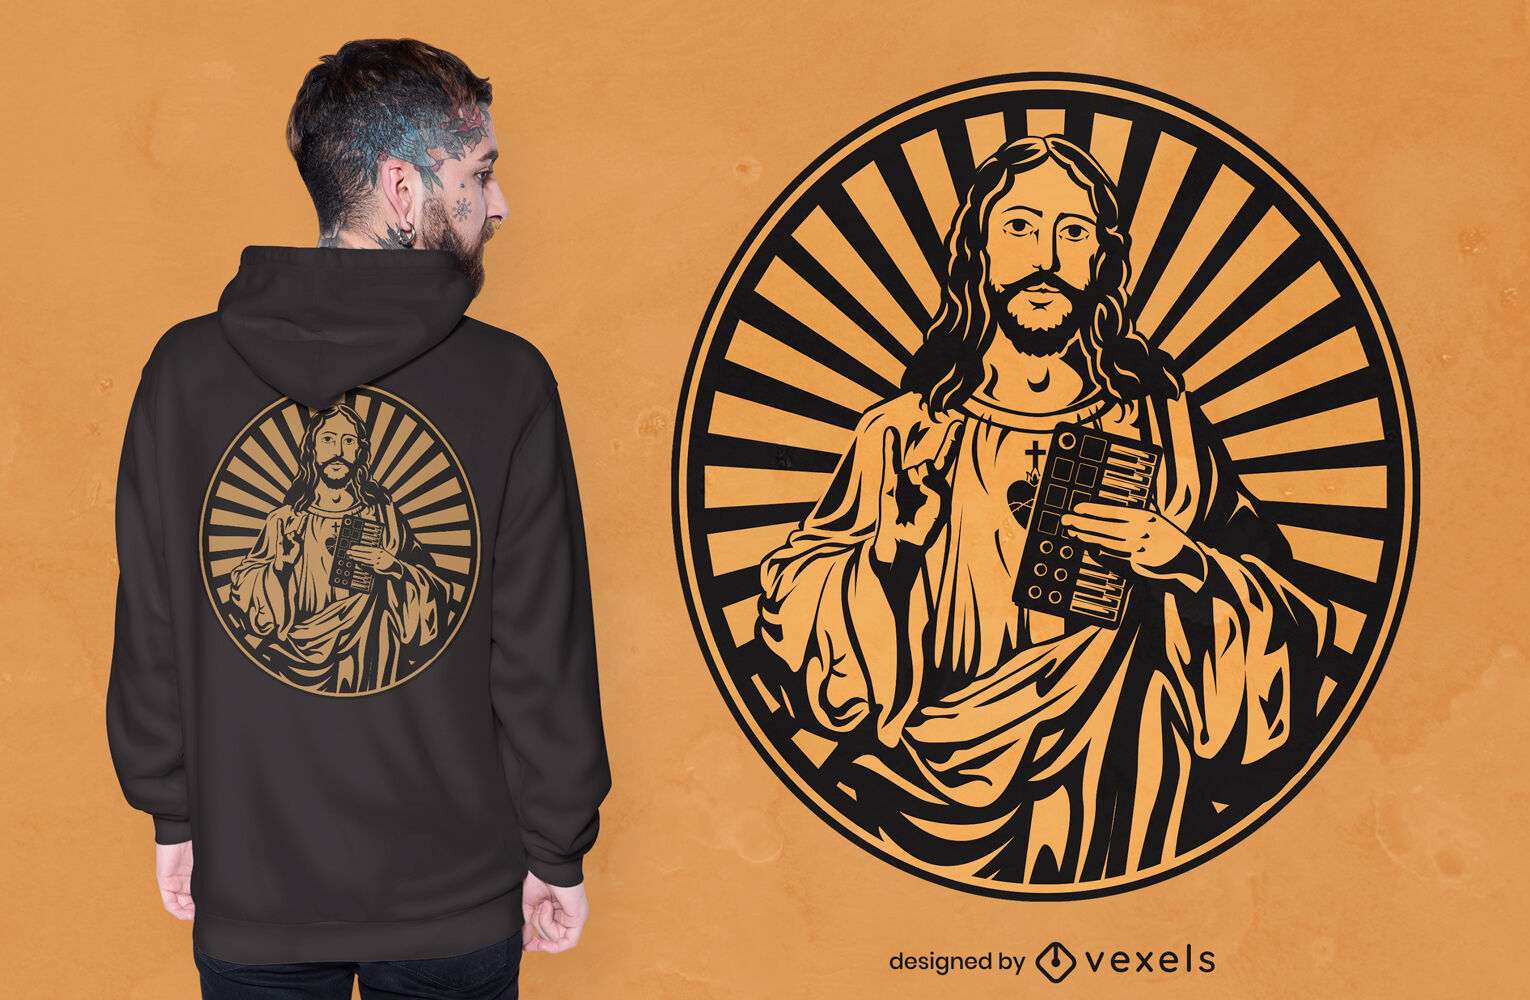 Jesus with synthesizer t-shirt design